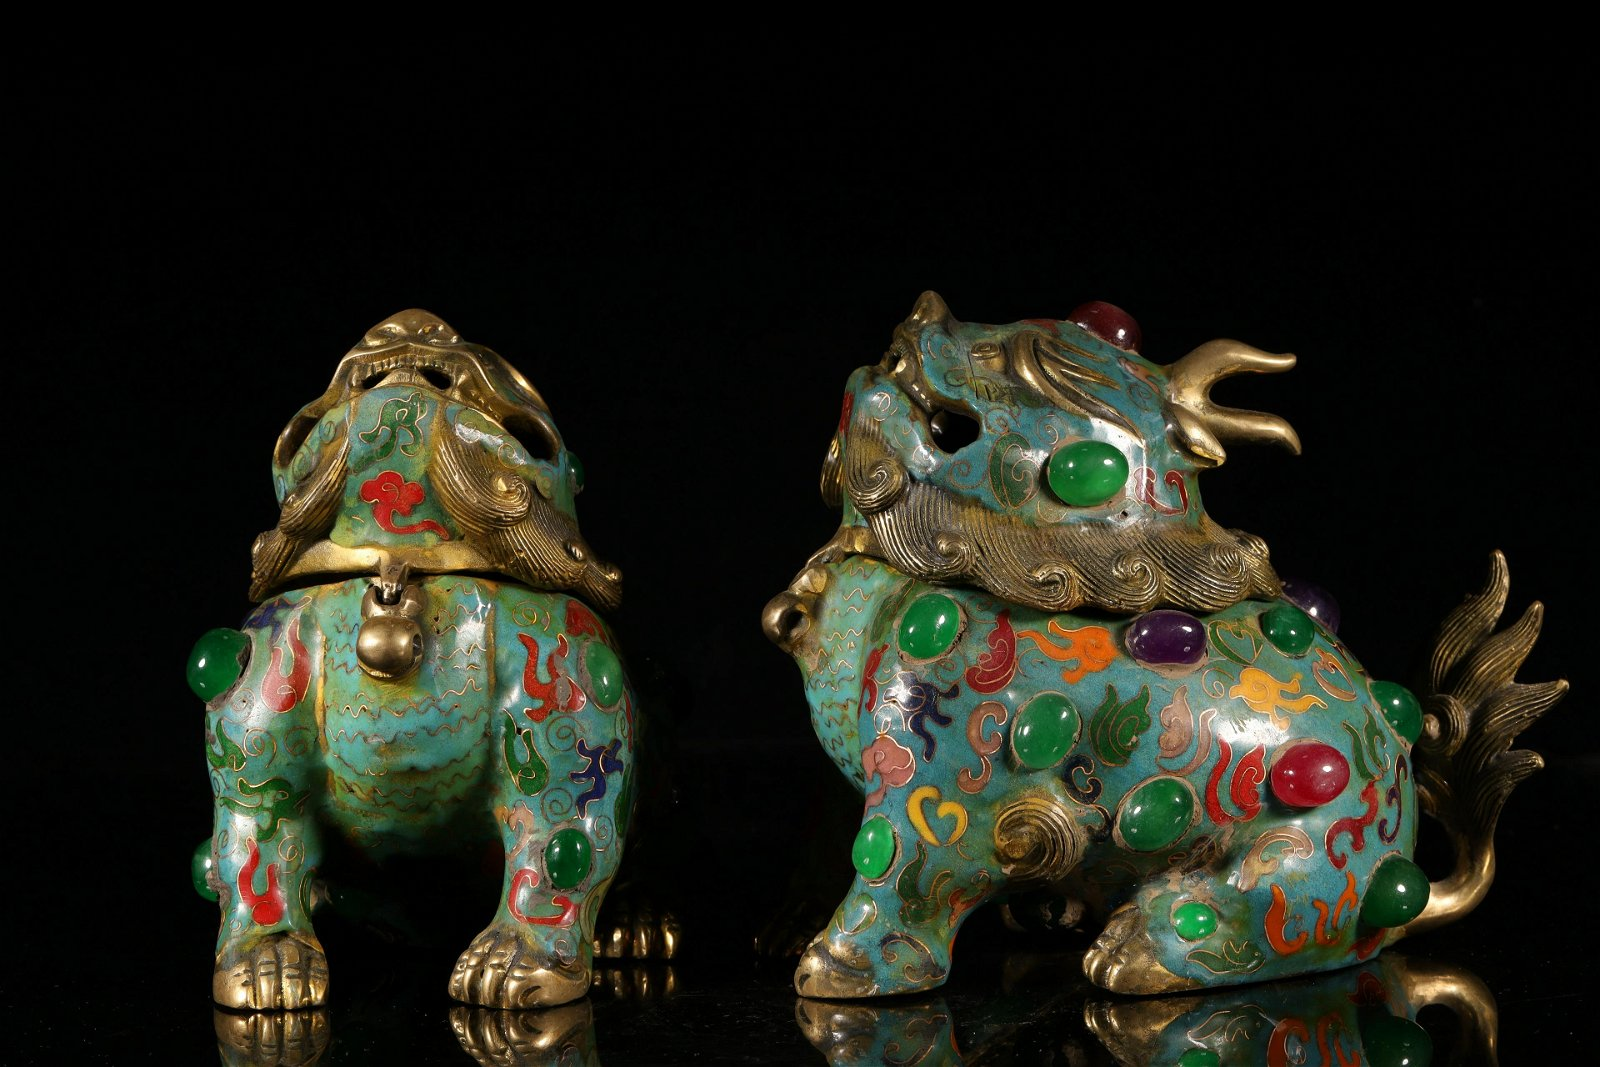 A Fine Pair of Cloisonne Censers Inlaid with Gems